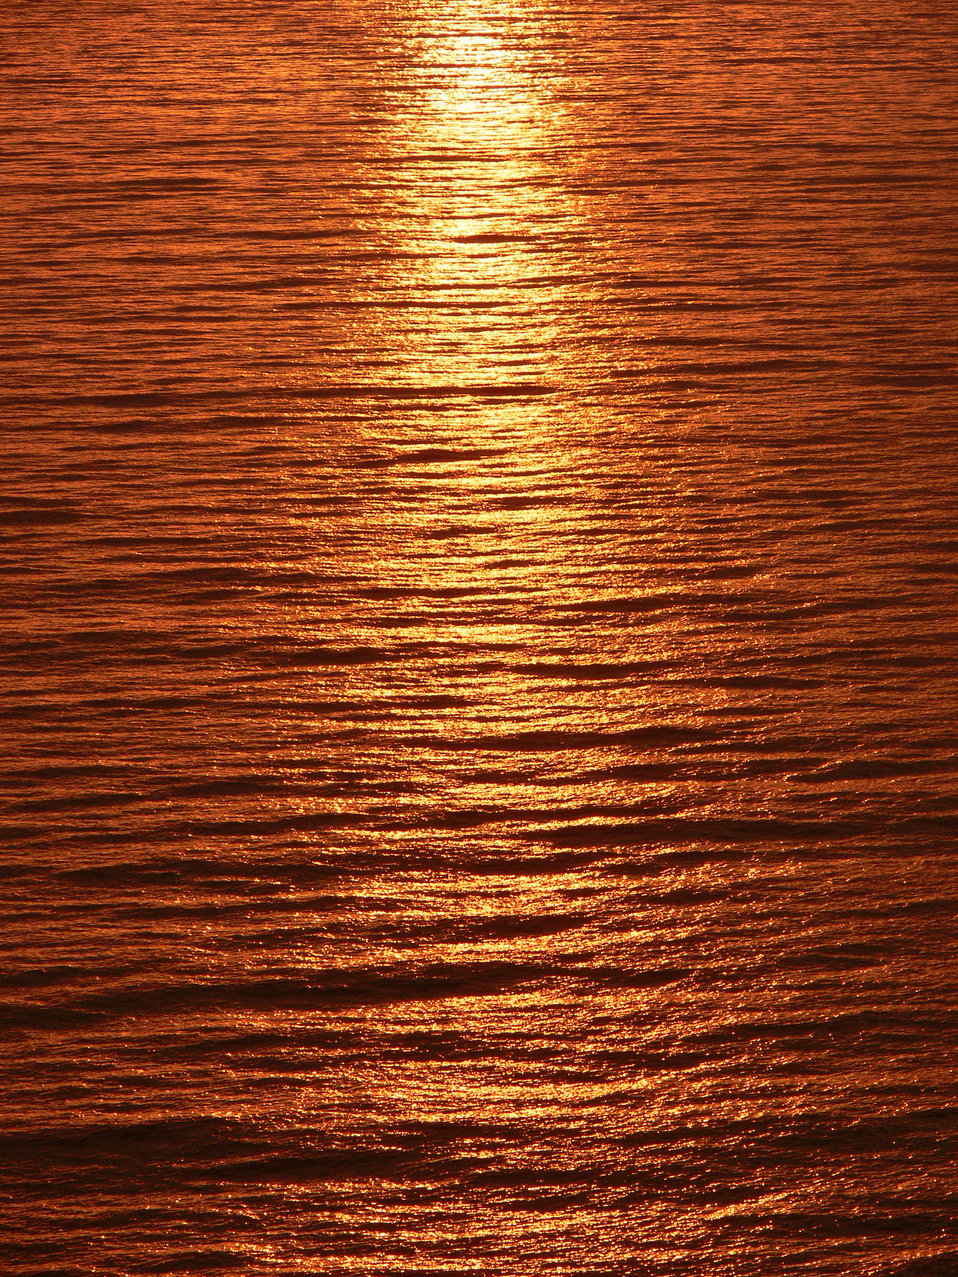 Sunset light over sea